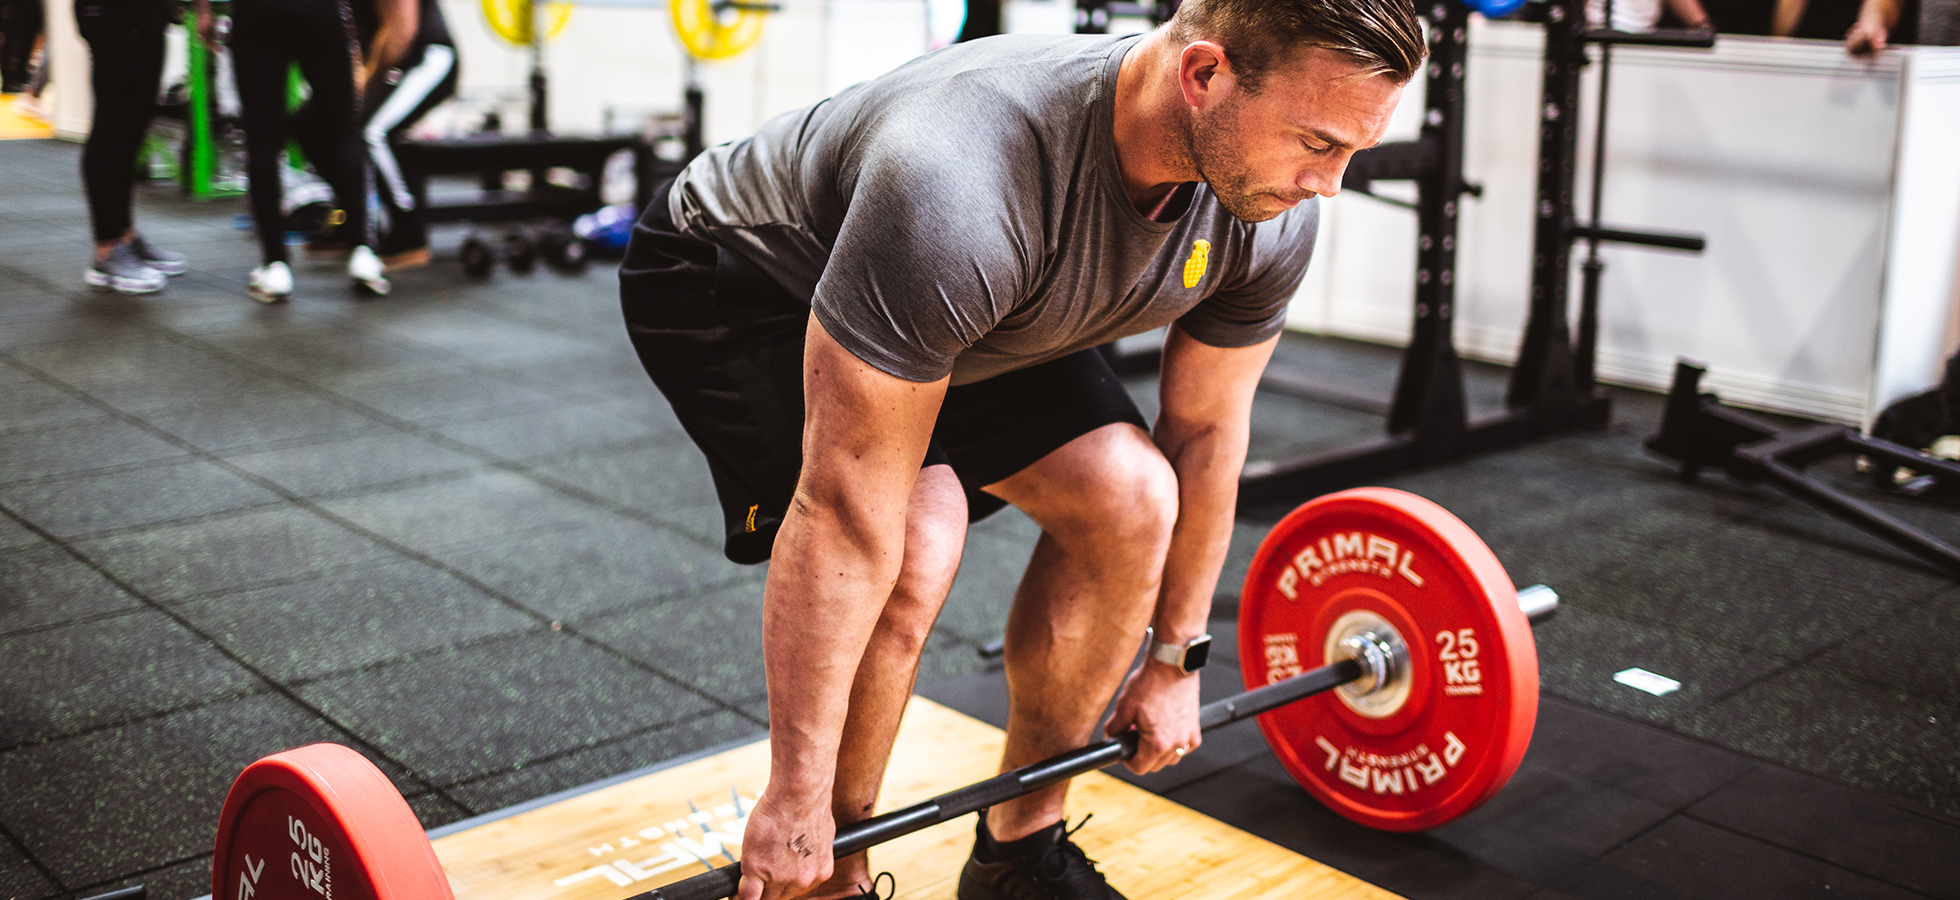 what is a set in weight training